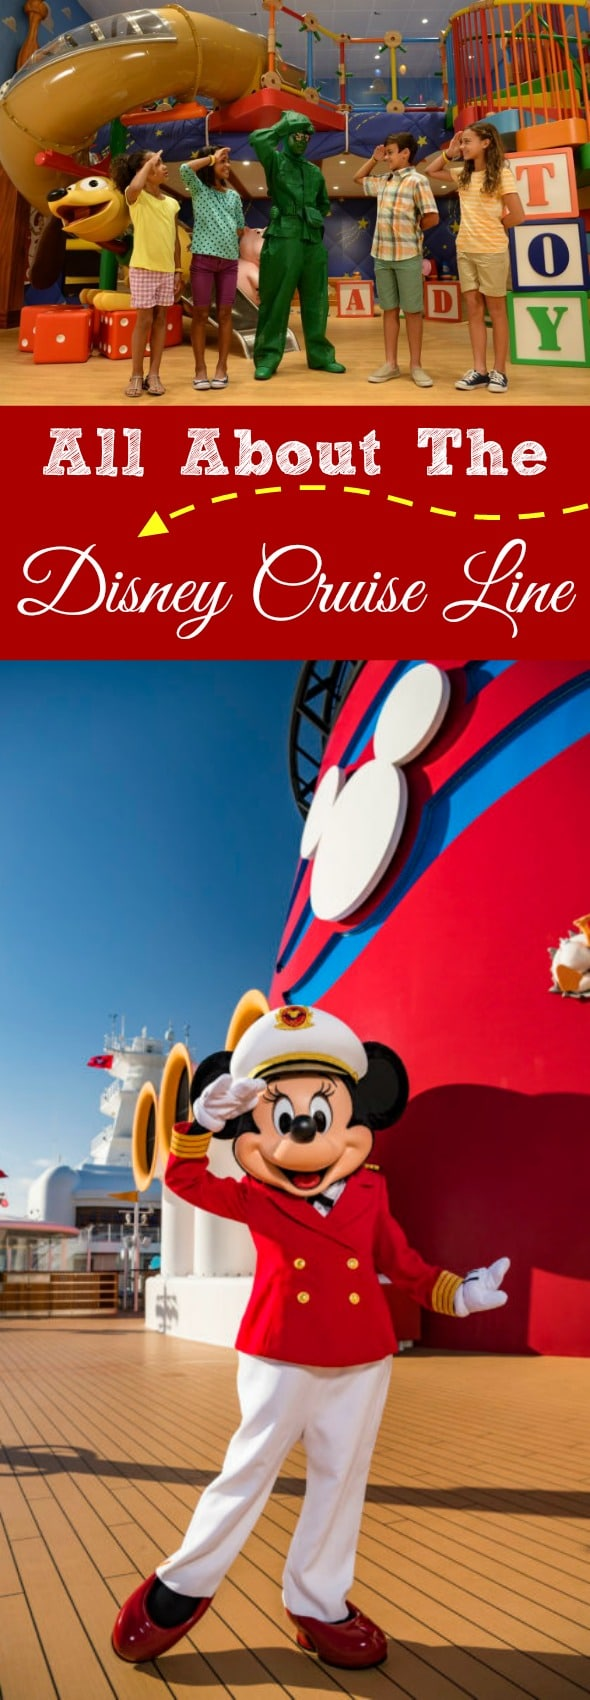 What you need to know about Disney Cruise Line vacations #travel #disney #disneycruise #familytravel